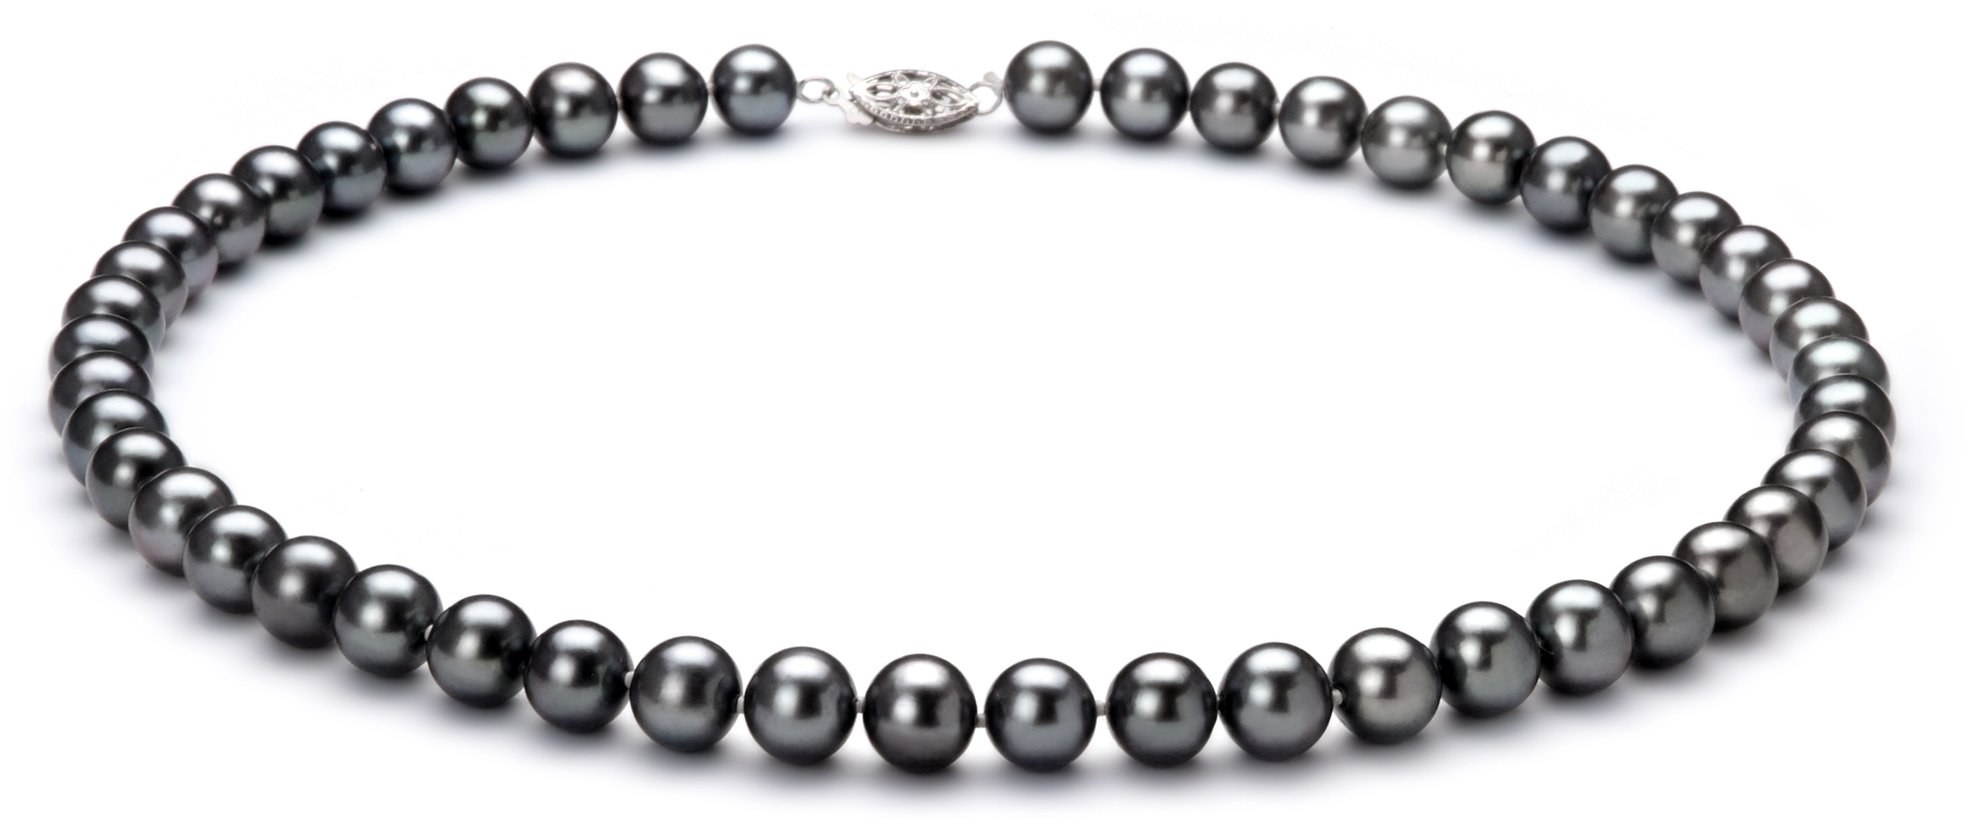 Black 7.5-8.5mm AA Quality Freshwater 925 Sterling Silver Cultured Pearl Necklace-16 in Chocker length